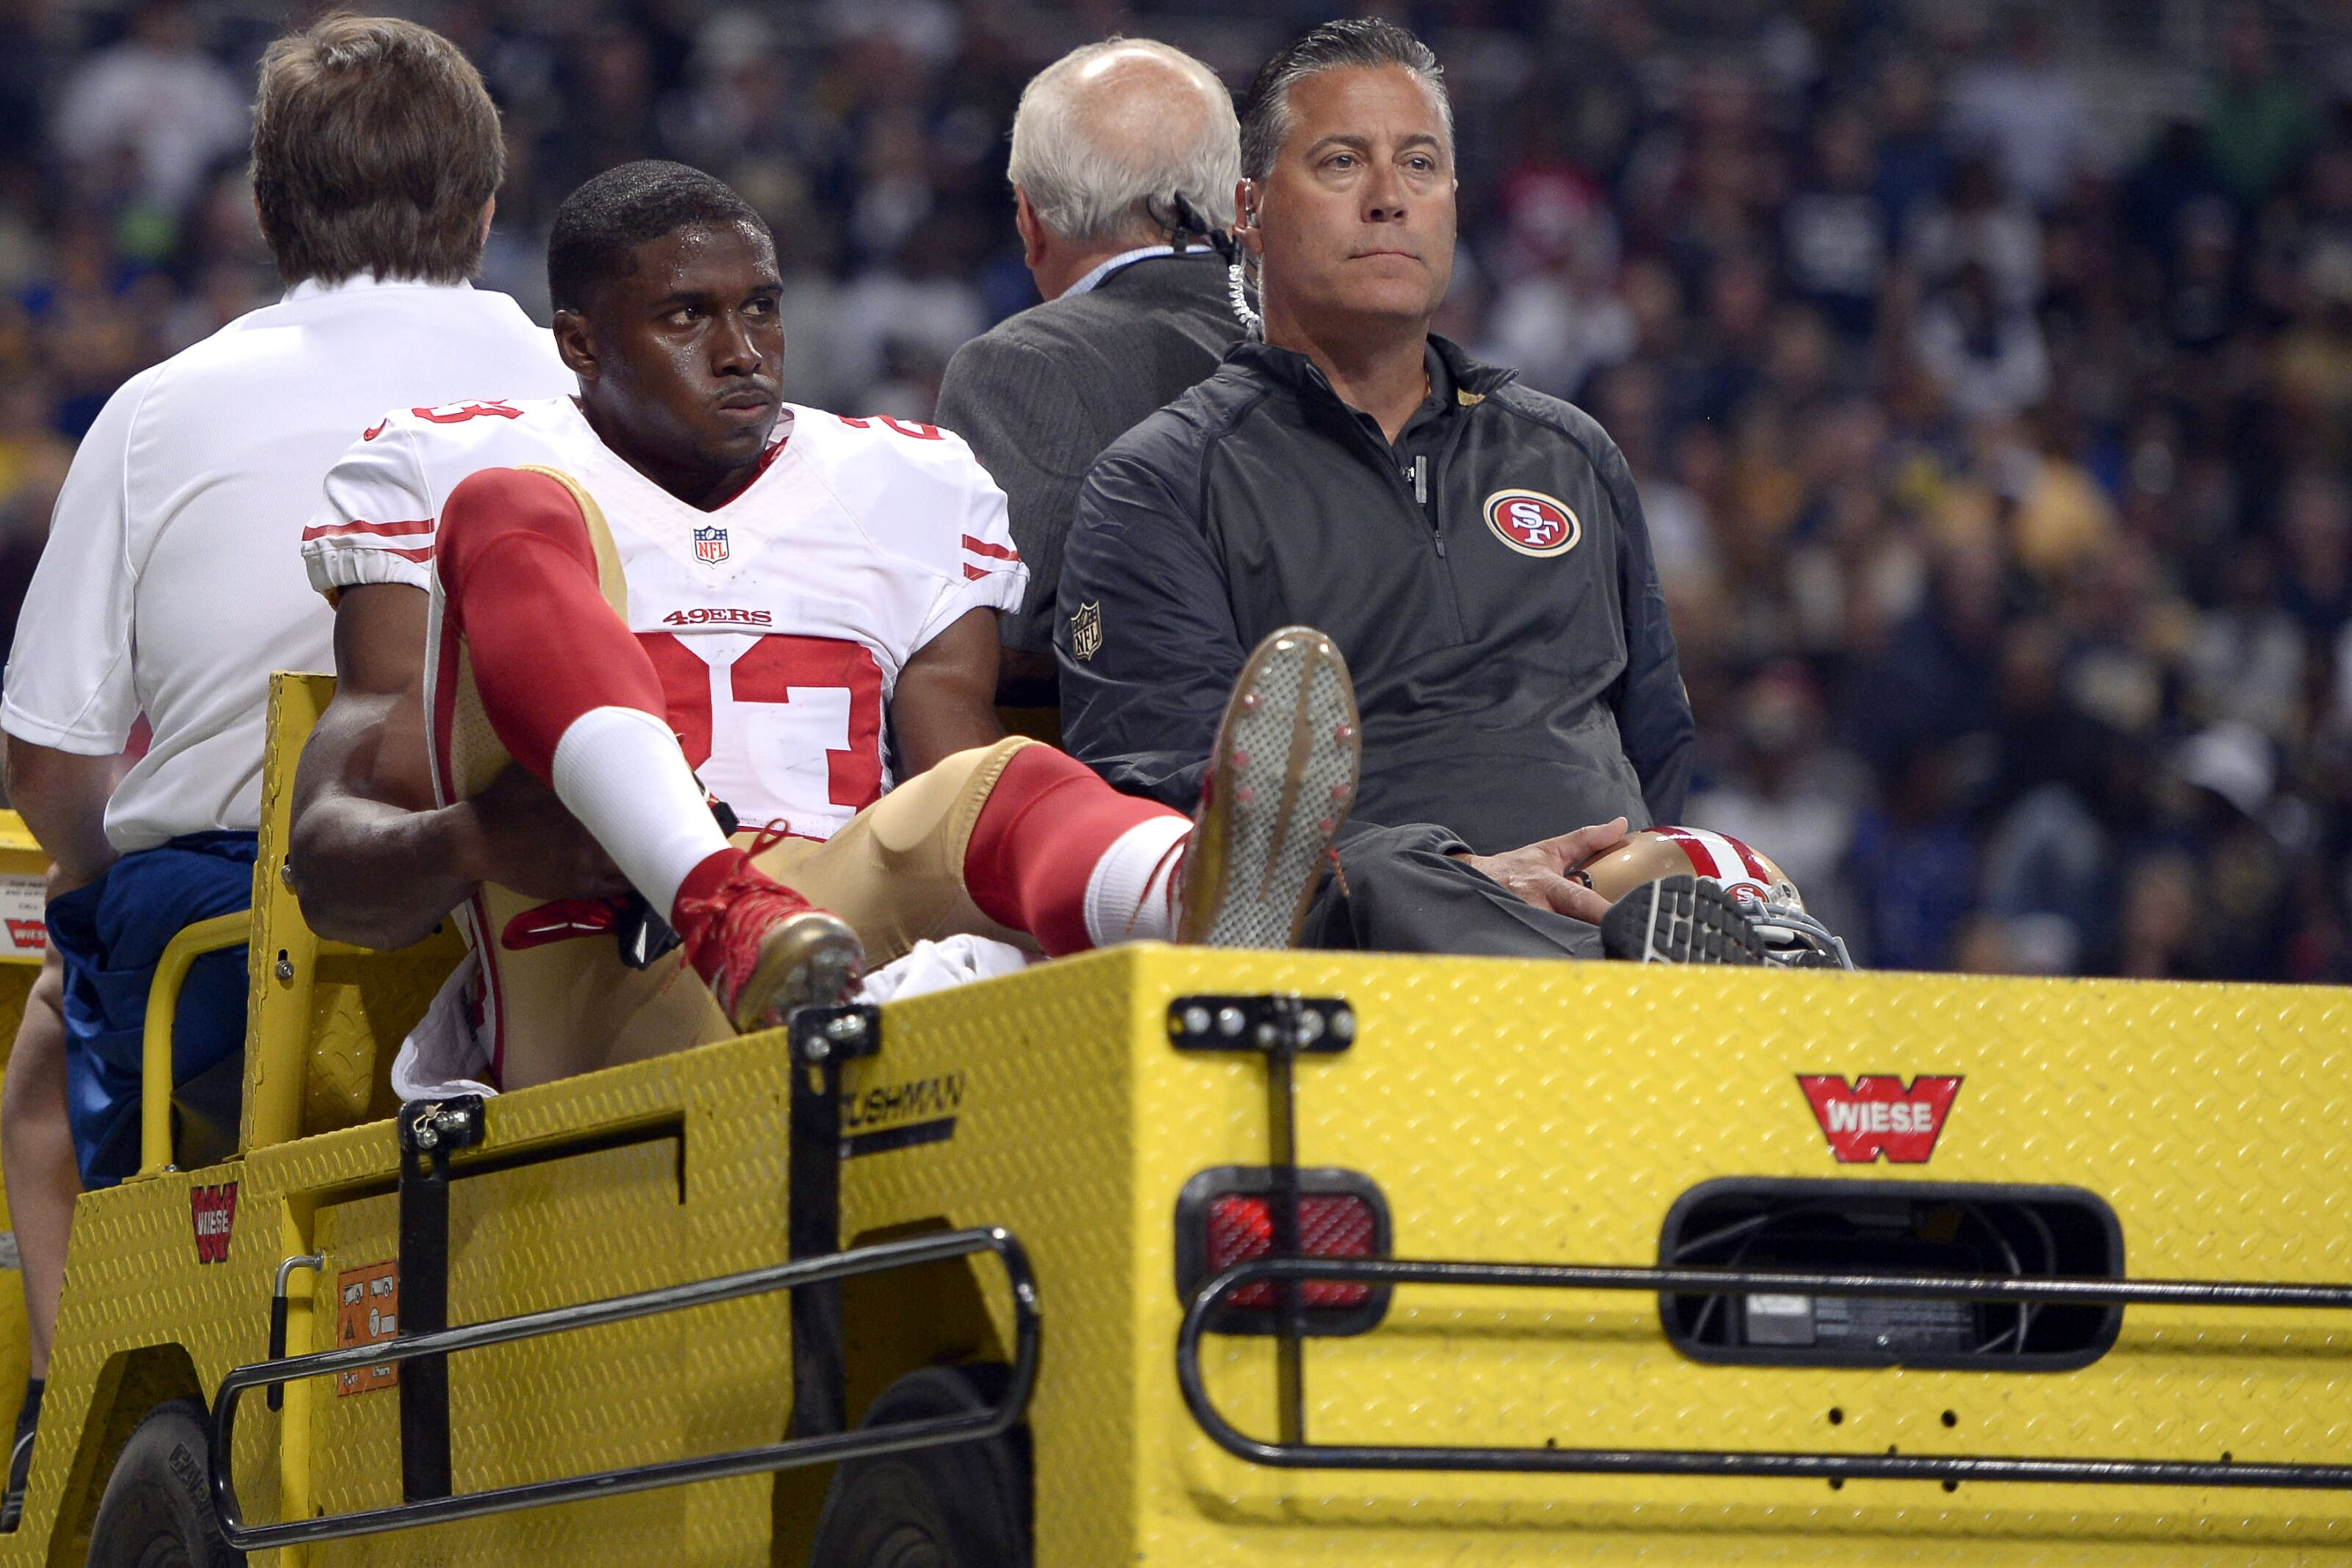 01 November 2015: San Francisco 49ers Running Back Reggie Bush (23) [7728] is carted off due to getting injured after returning a kickoff and slipping on a section of cement in action during a game between the San Francisco 49ers and the St. Louis Rams at Edward Jones Dome, in St. Louis, MO. (Photo by Robin Alam/Icon Sportswire) (Photo by Robin Alam/Icon Sportswire/Corbis via Getty Images)